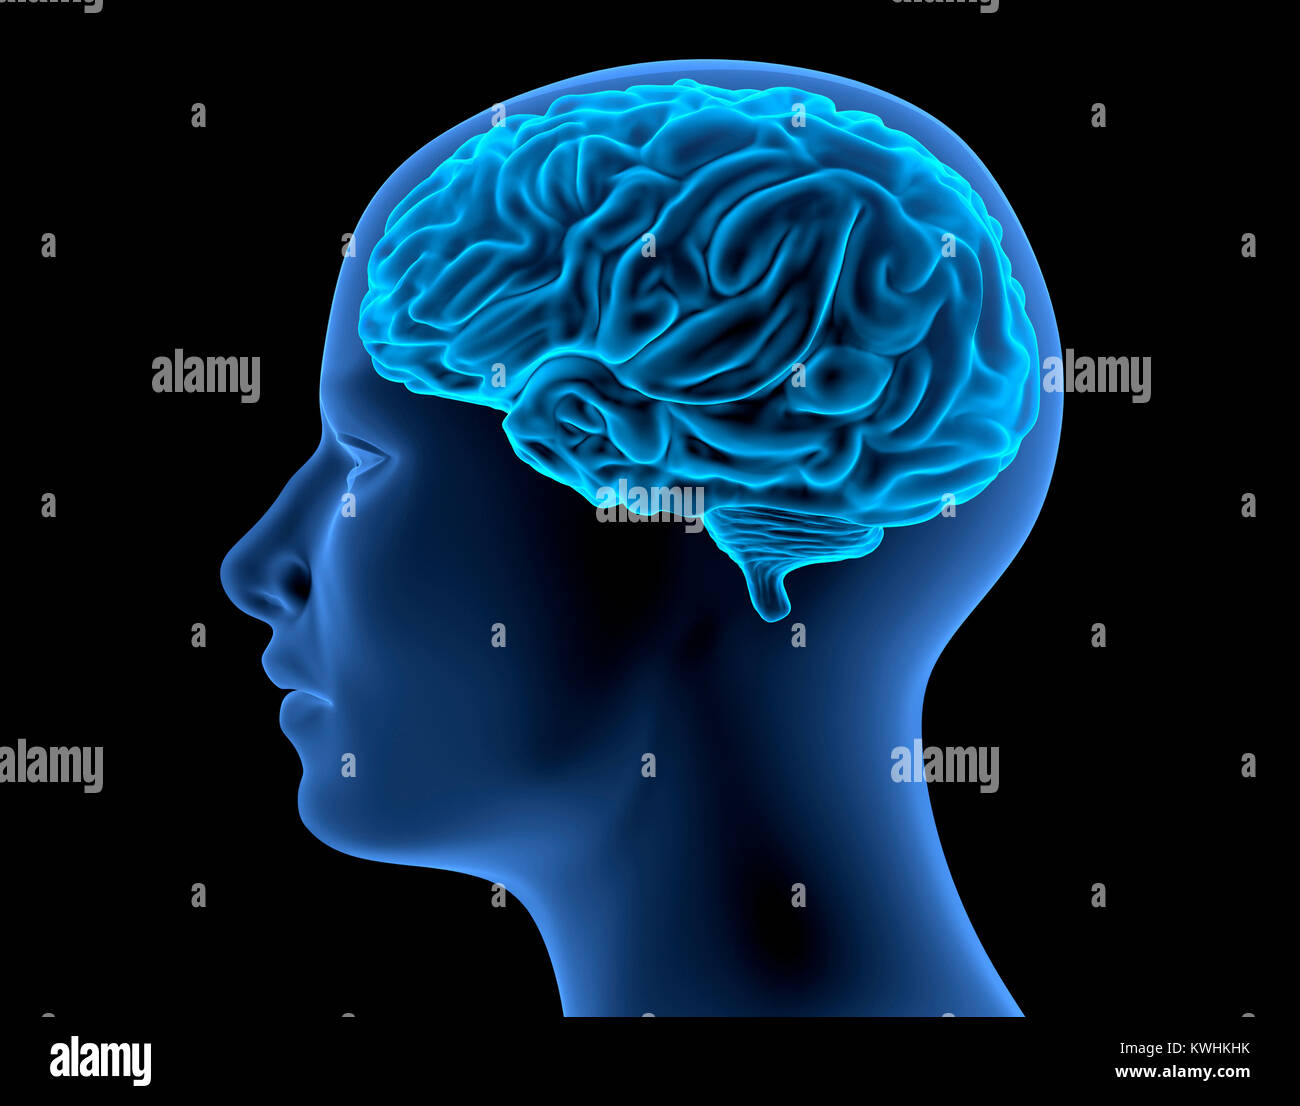 The Human Body - Brain. X-Ray Effect. 3D illustration - Stock Image